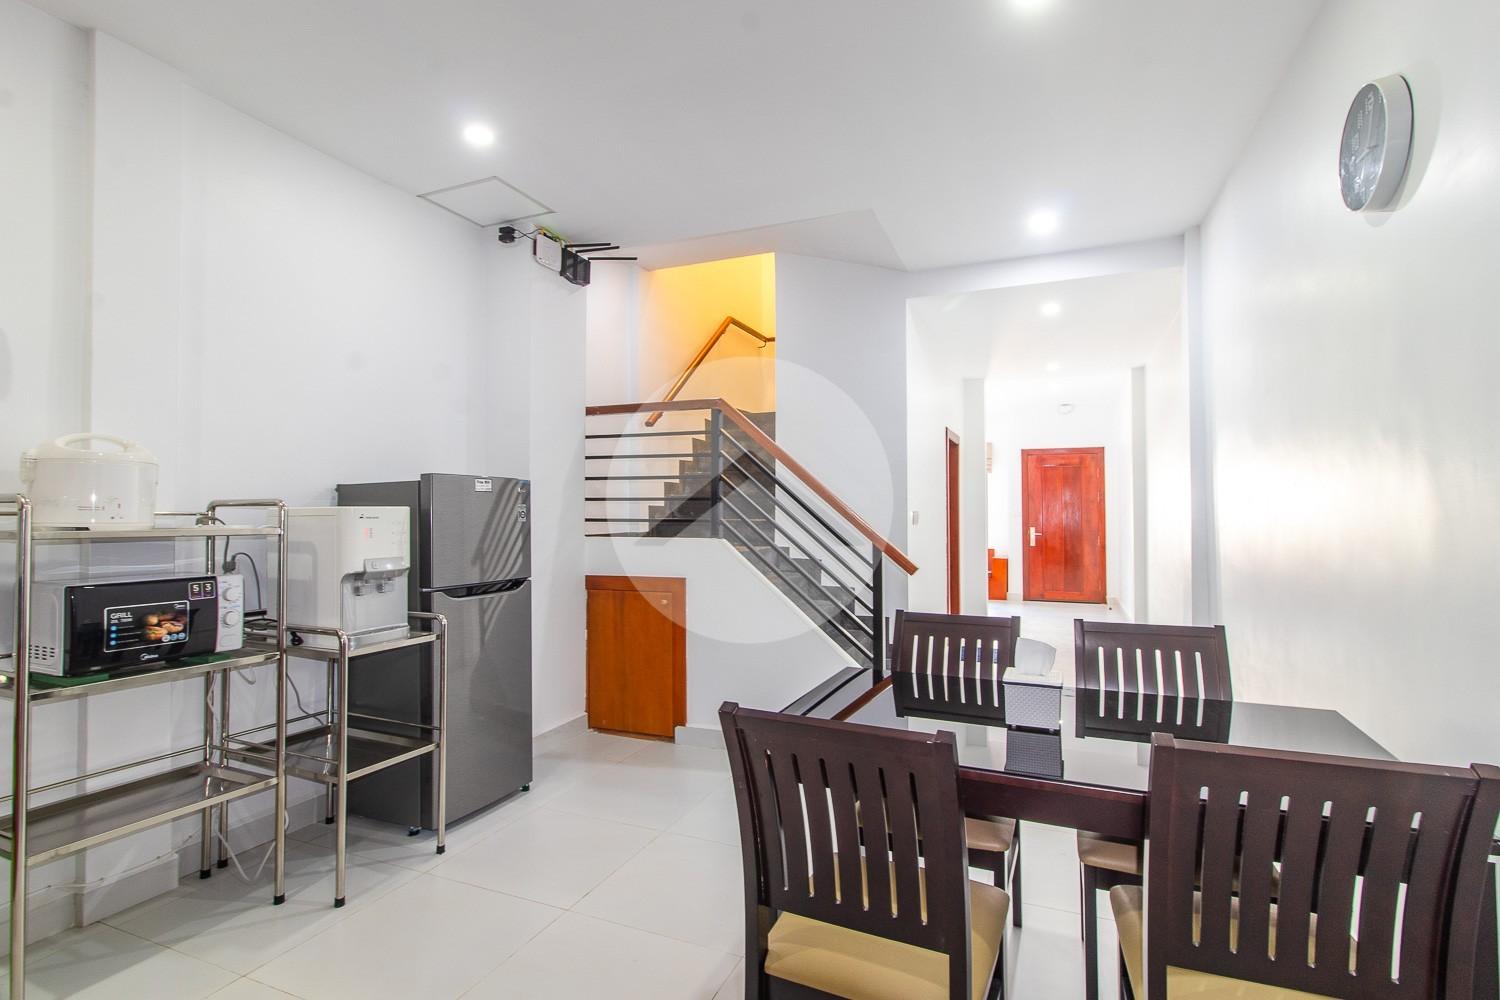 2 Bedroom Twin Villa For Rent - Sra Ngae, Siem Reap